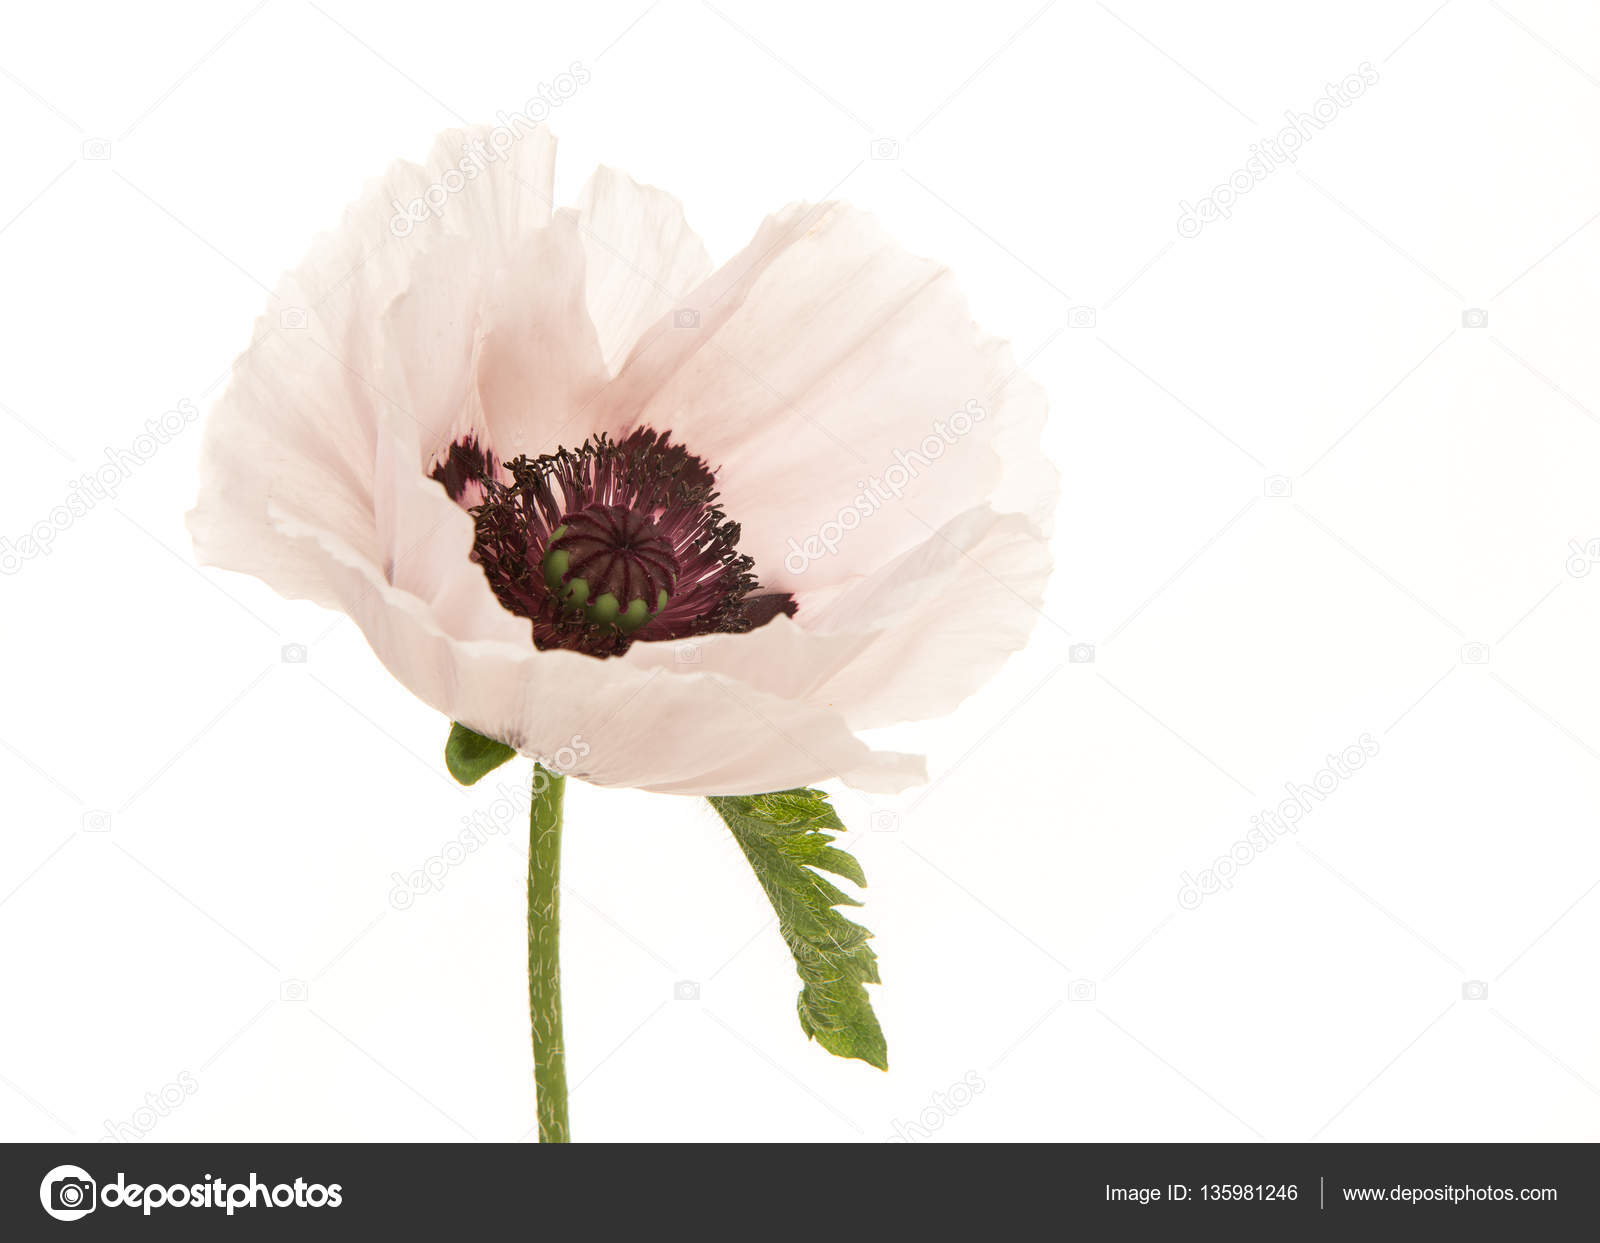 Blooming White Poppy Flower Isolated On A White Background Stock